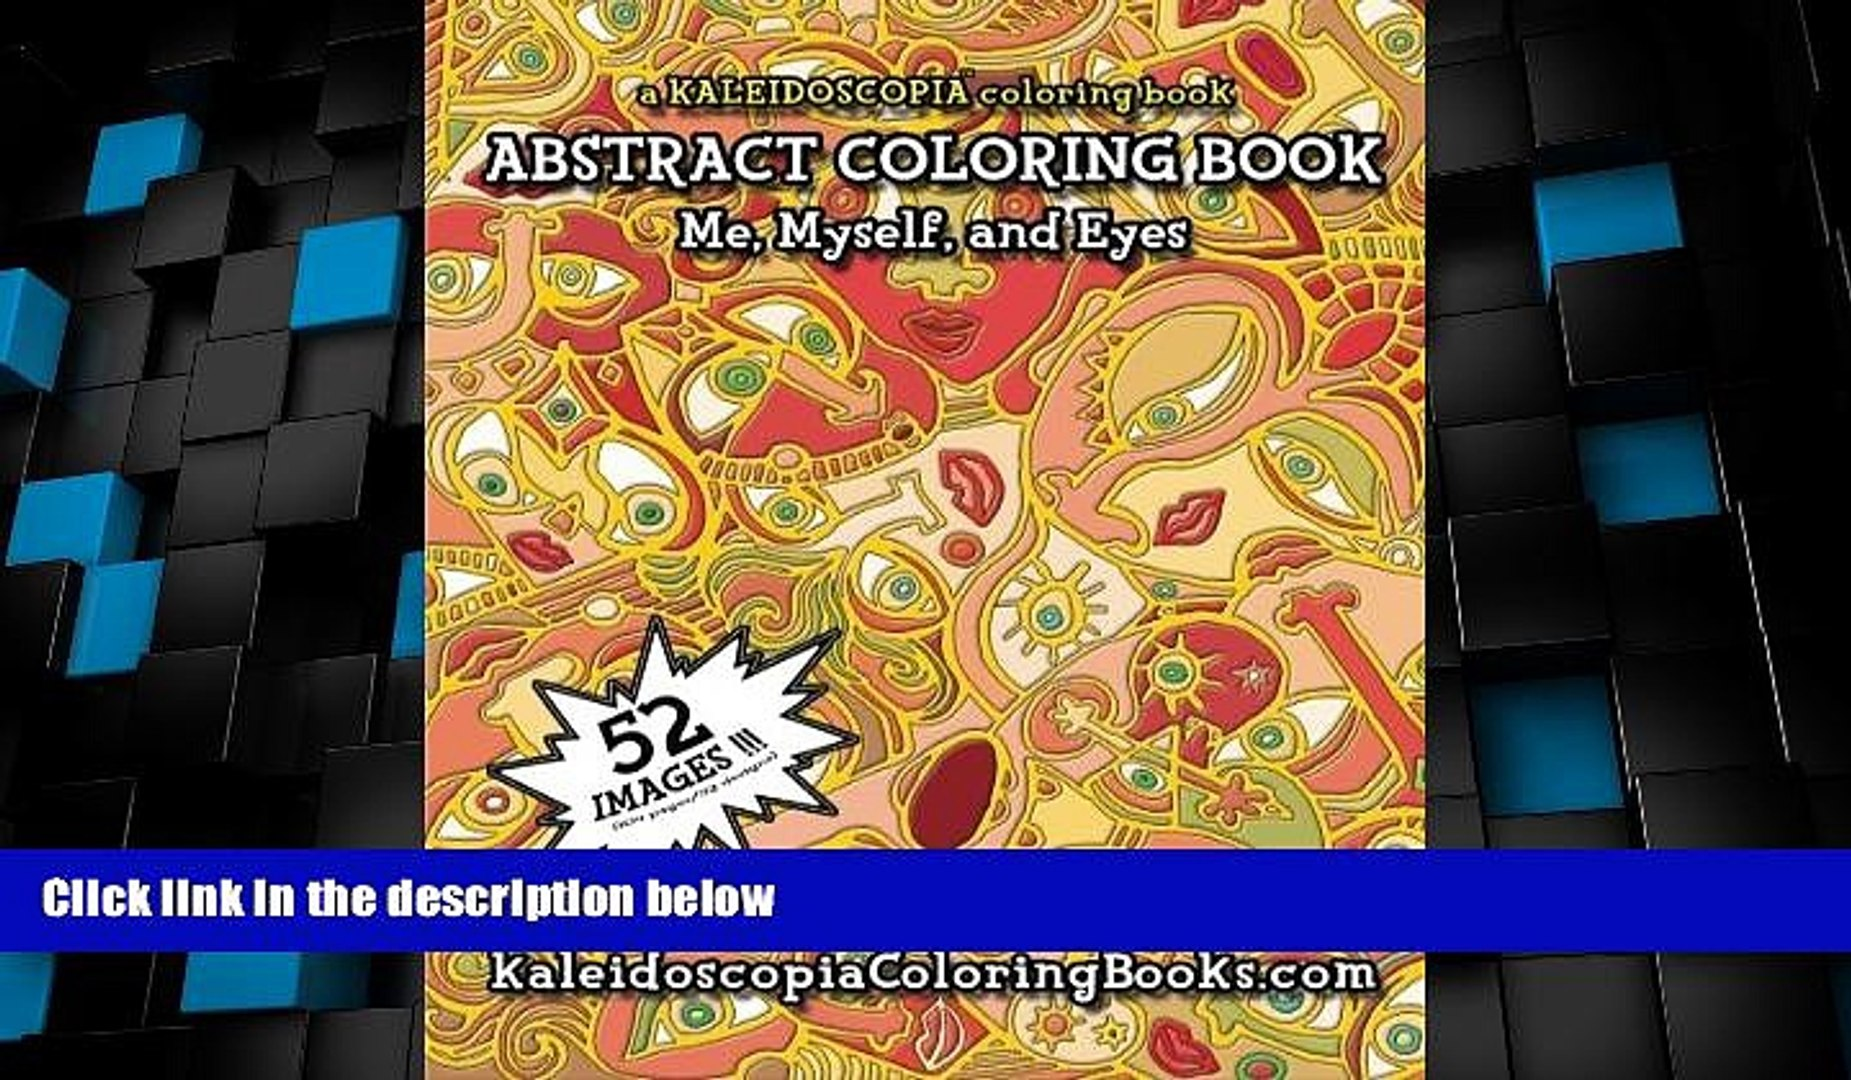 Big Deals Me, Myself, And Eyes: A Kaleidoscopia Coloring Book: An Abstract  Coloring Book Free